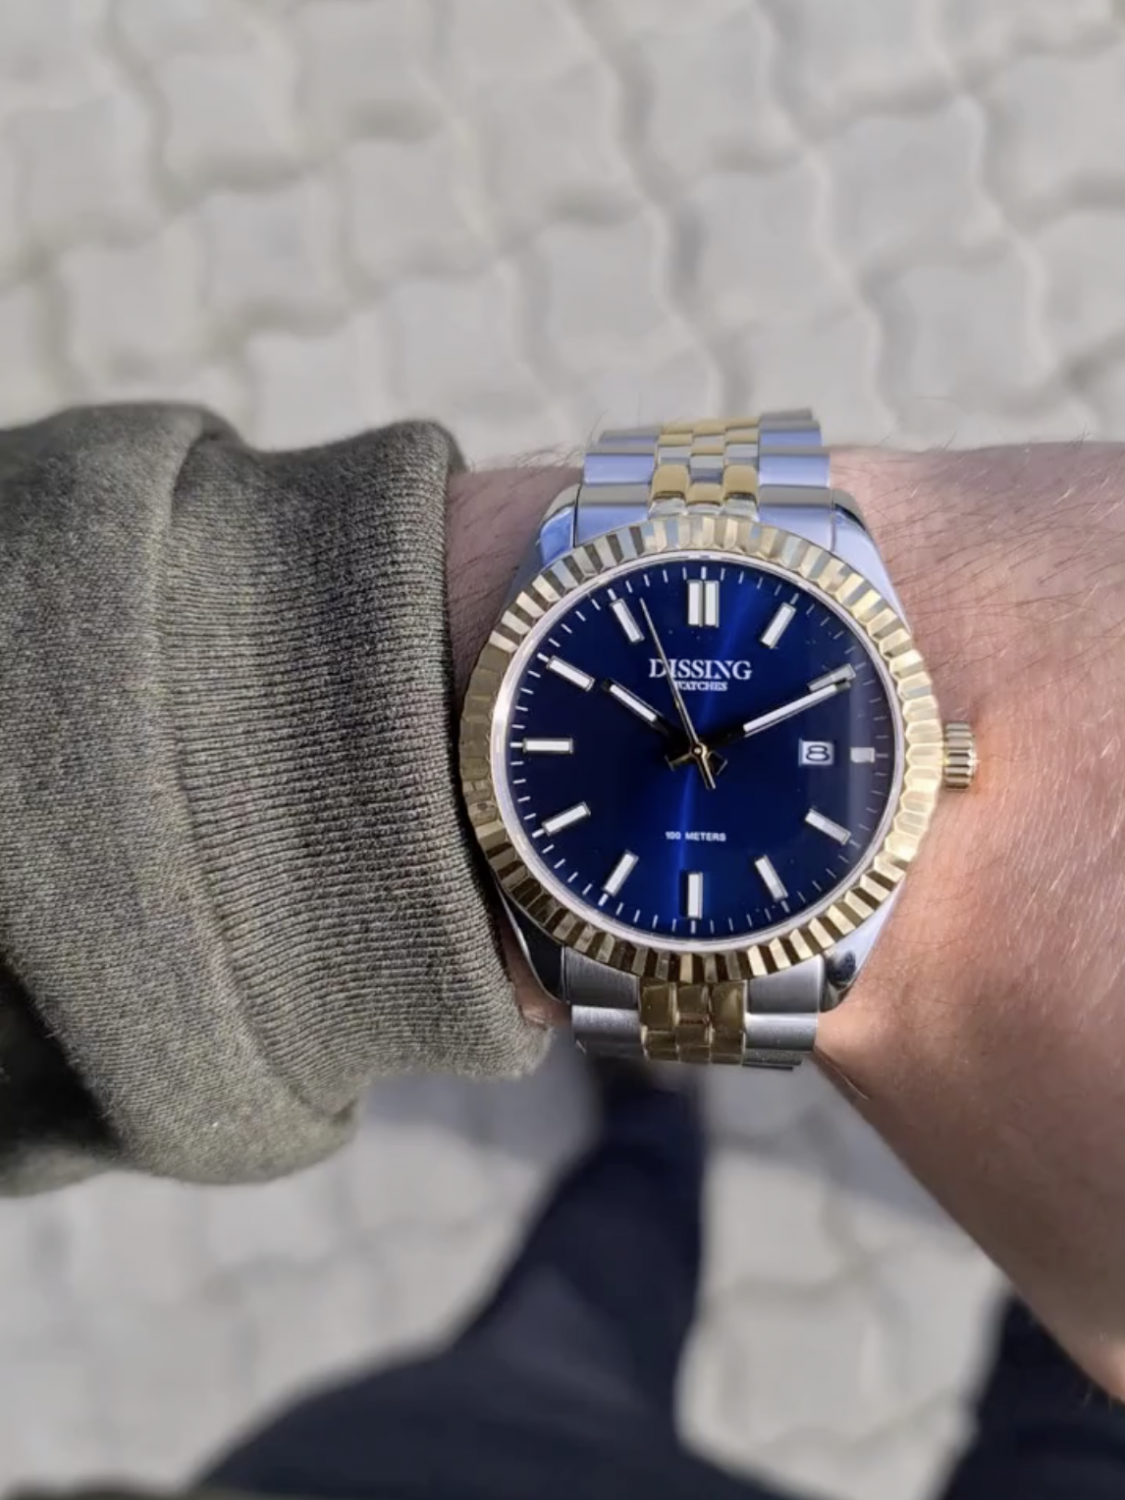 __=__youtube___Dissing Two Tone Date Gold/Blue___https://www.youtube.com/embed/nUIEhpt6-So___nUIEhpt6-So